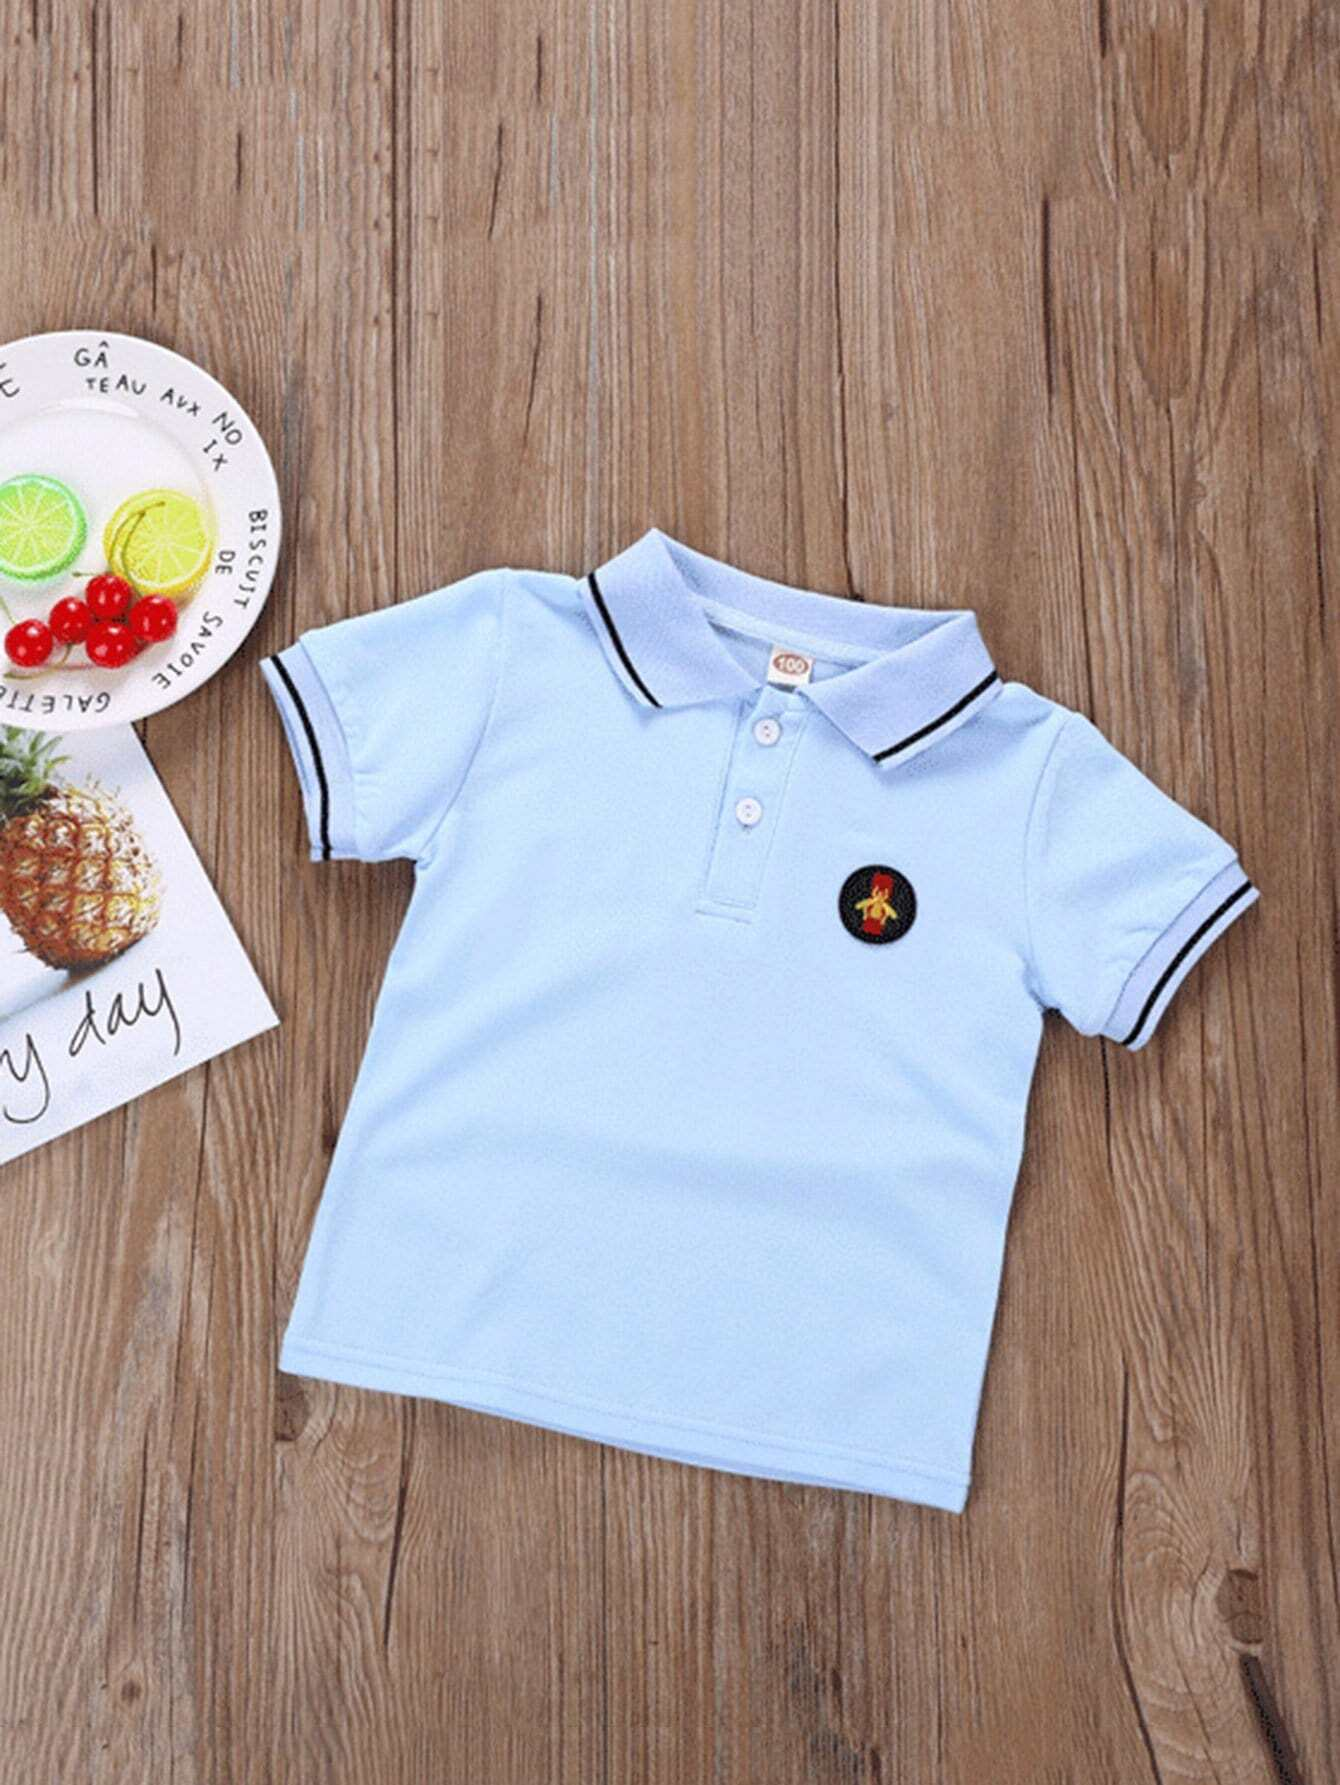 Boys Embroidery Patched Solid Polo Shirt Boys Embroidery Patched Solid Polo Shirt